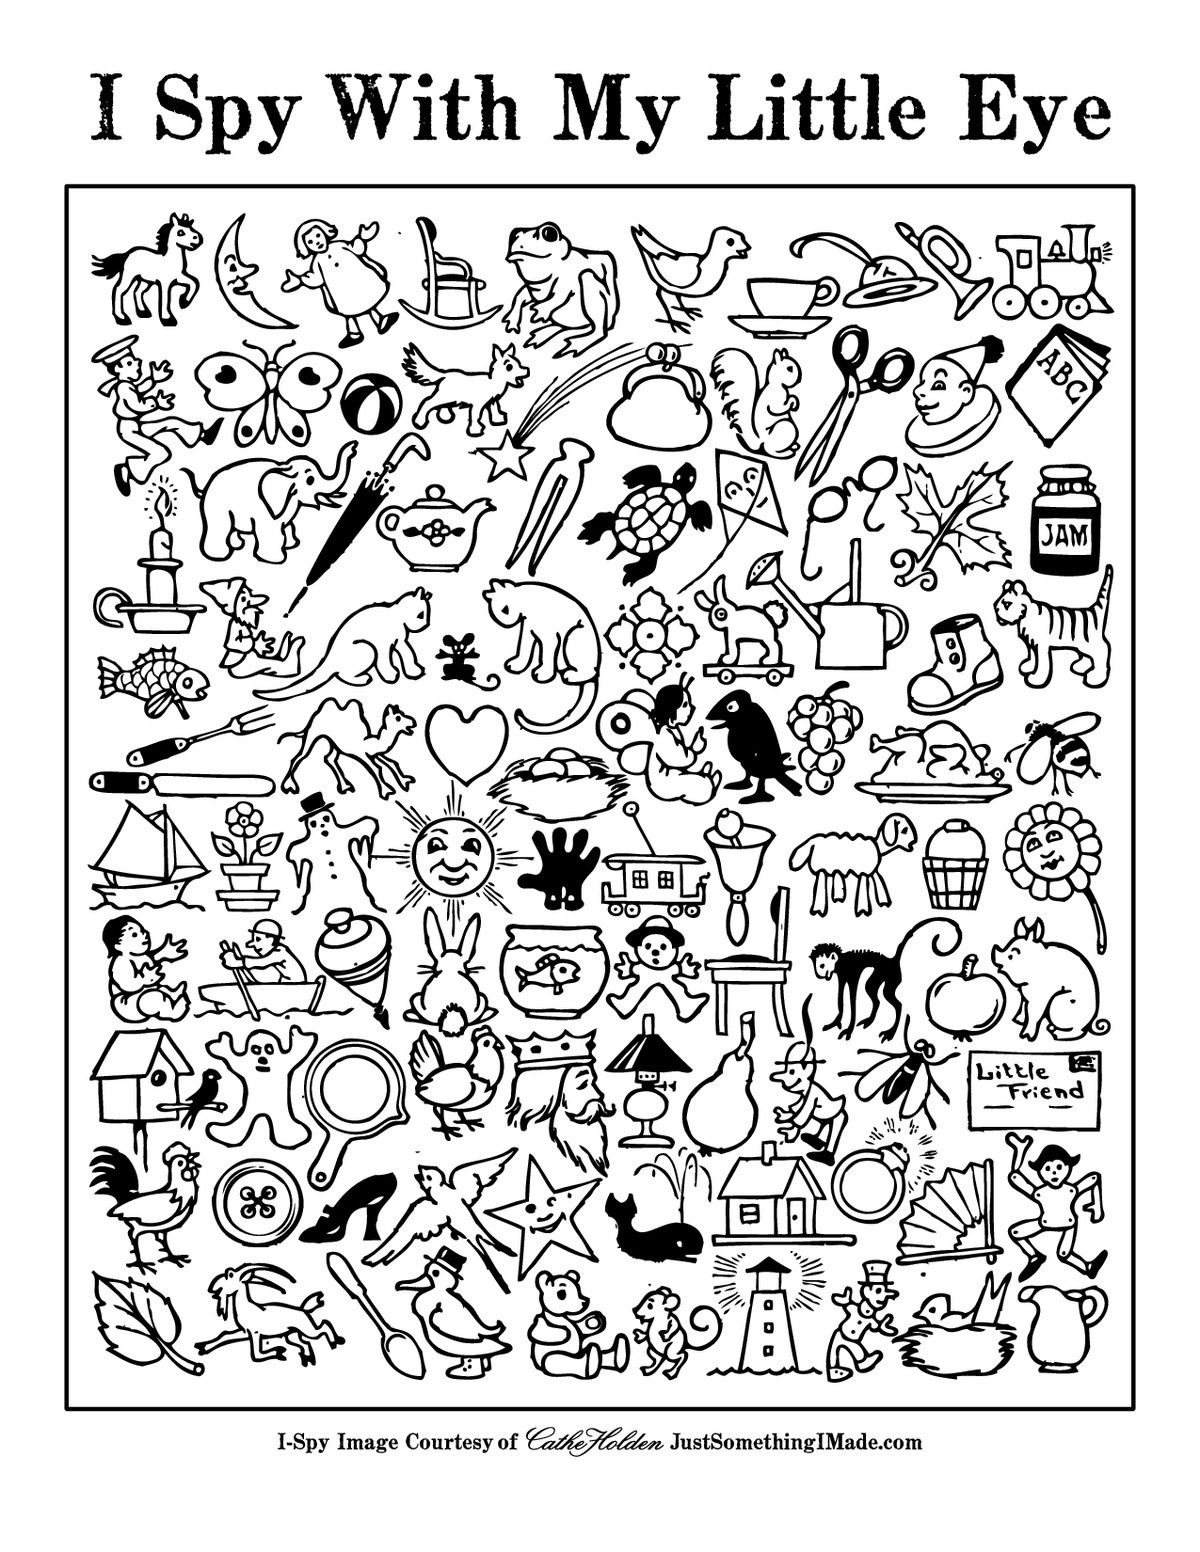 Pin By Sloane Hamrick On Doodles And Drawings